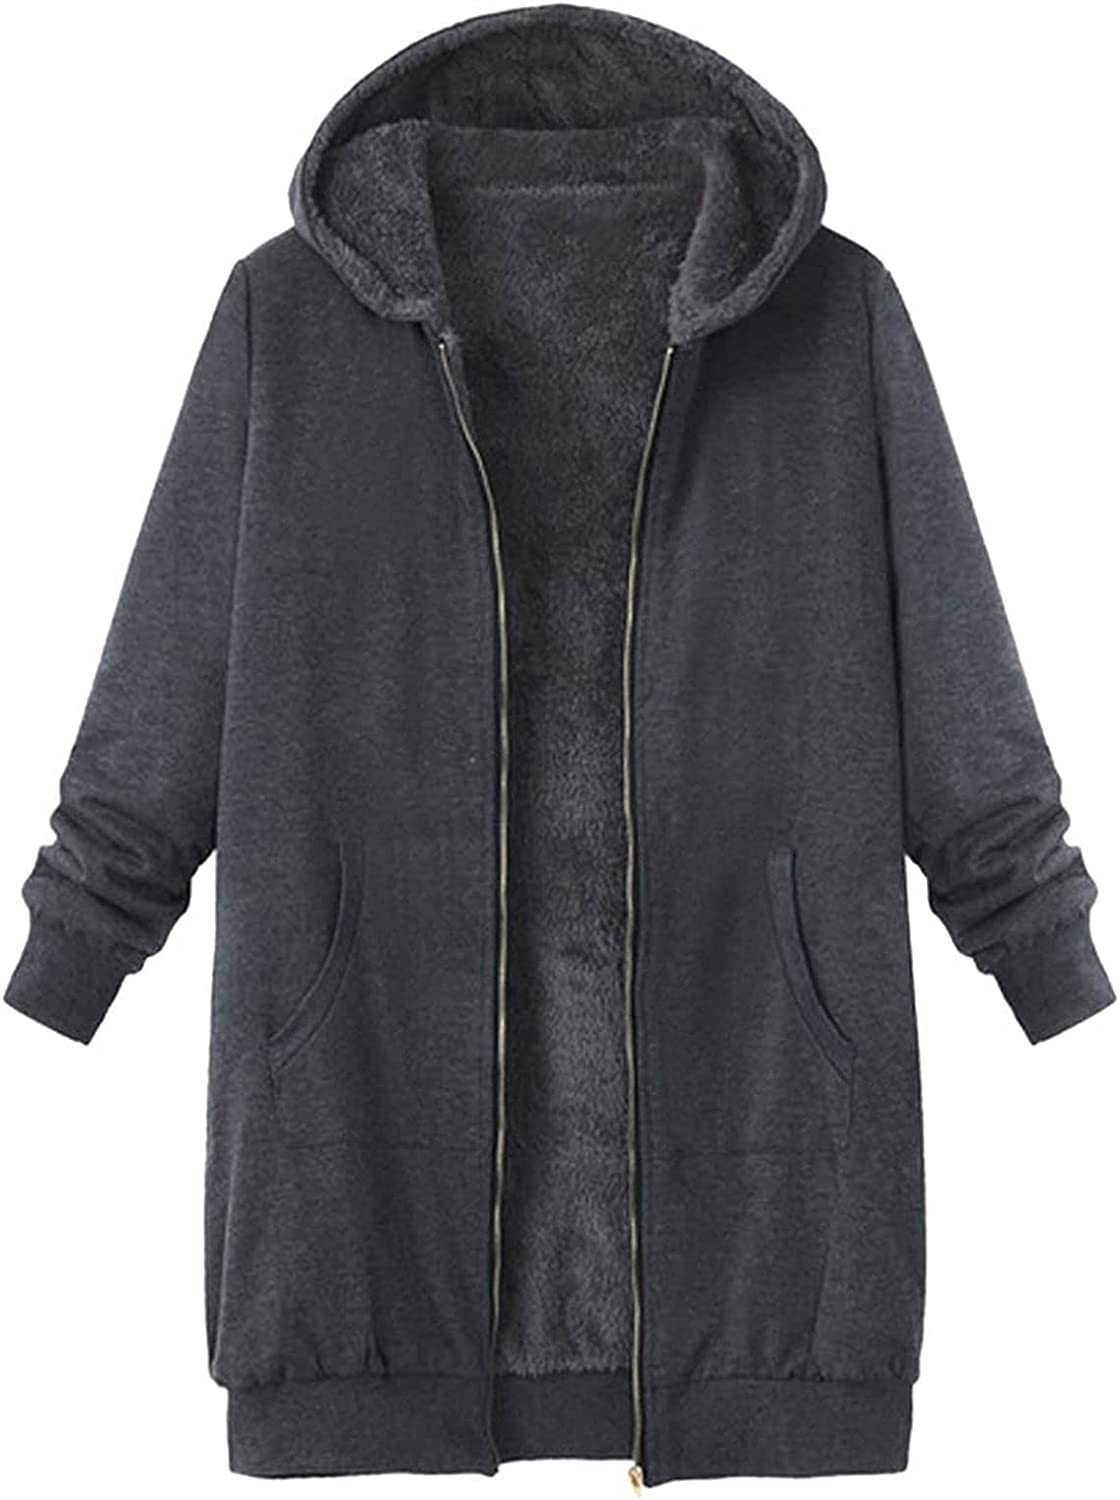 outlet Womens Fleece Coat Max 81% OFF Plus Size Zipper Hooded Jacket Cardigan Thick